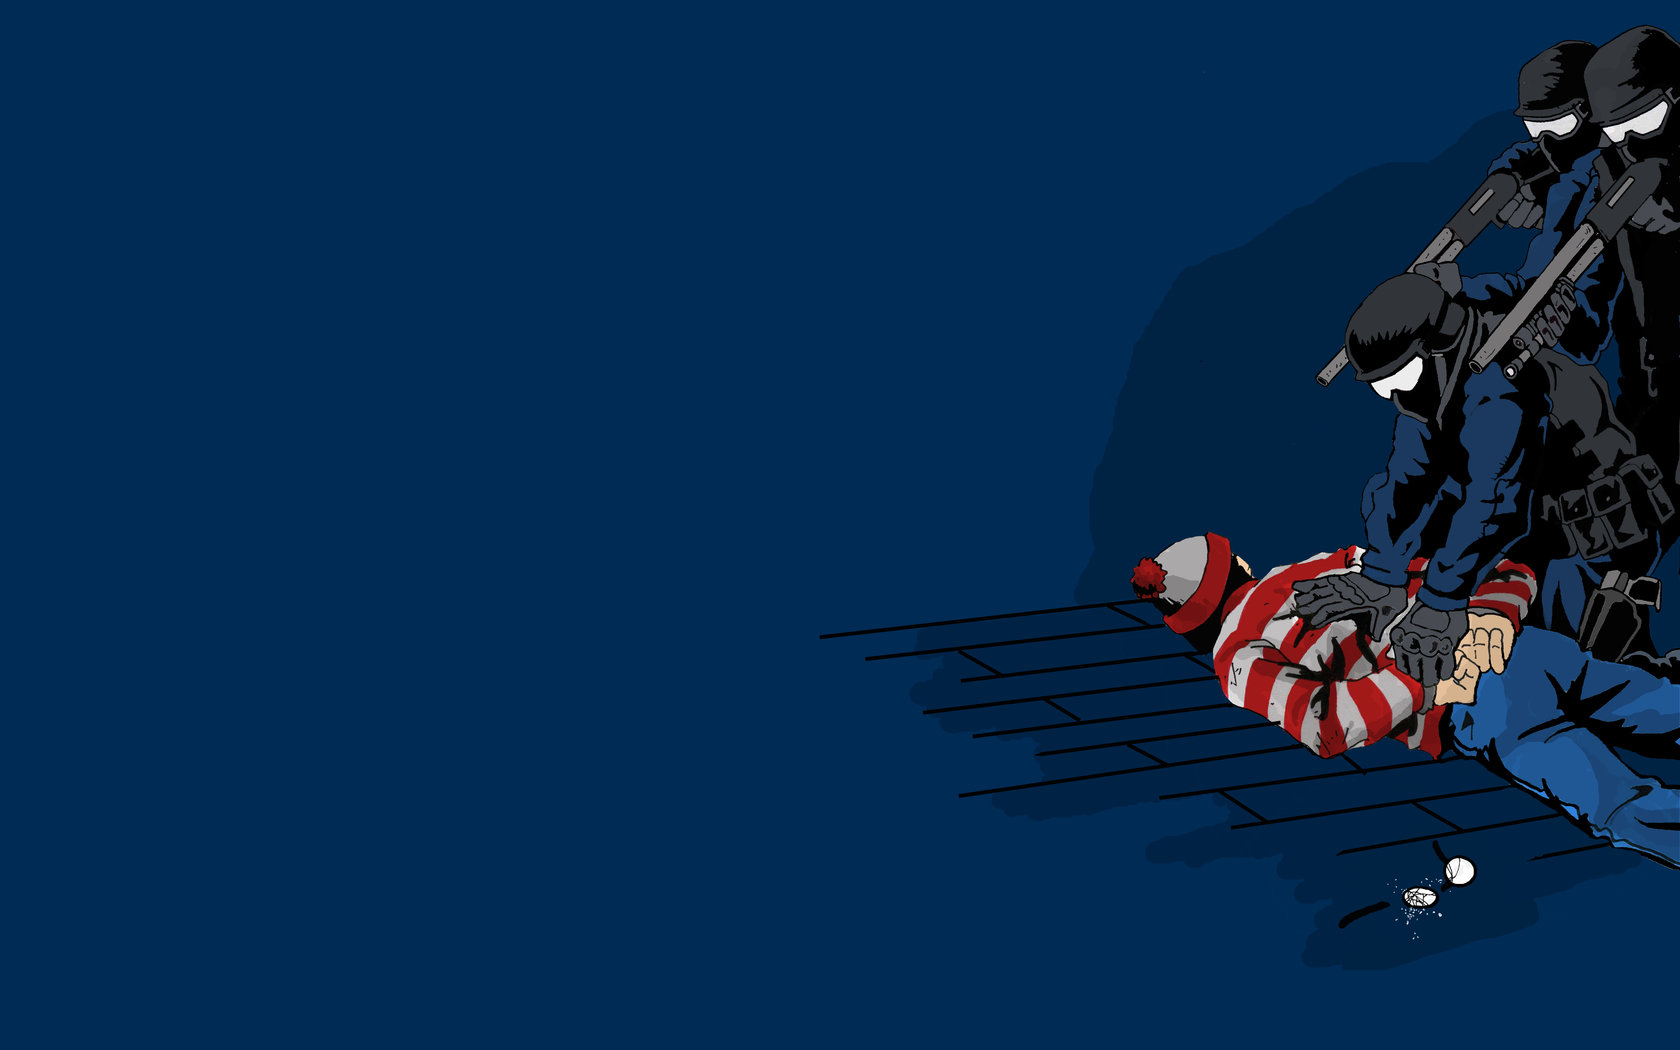 Waldo Wallpaper LOLd Wallpaper   Funny Pictures   Funny Videos 1680x1050